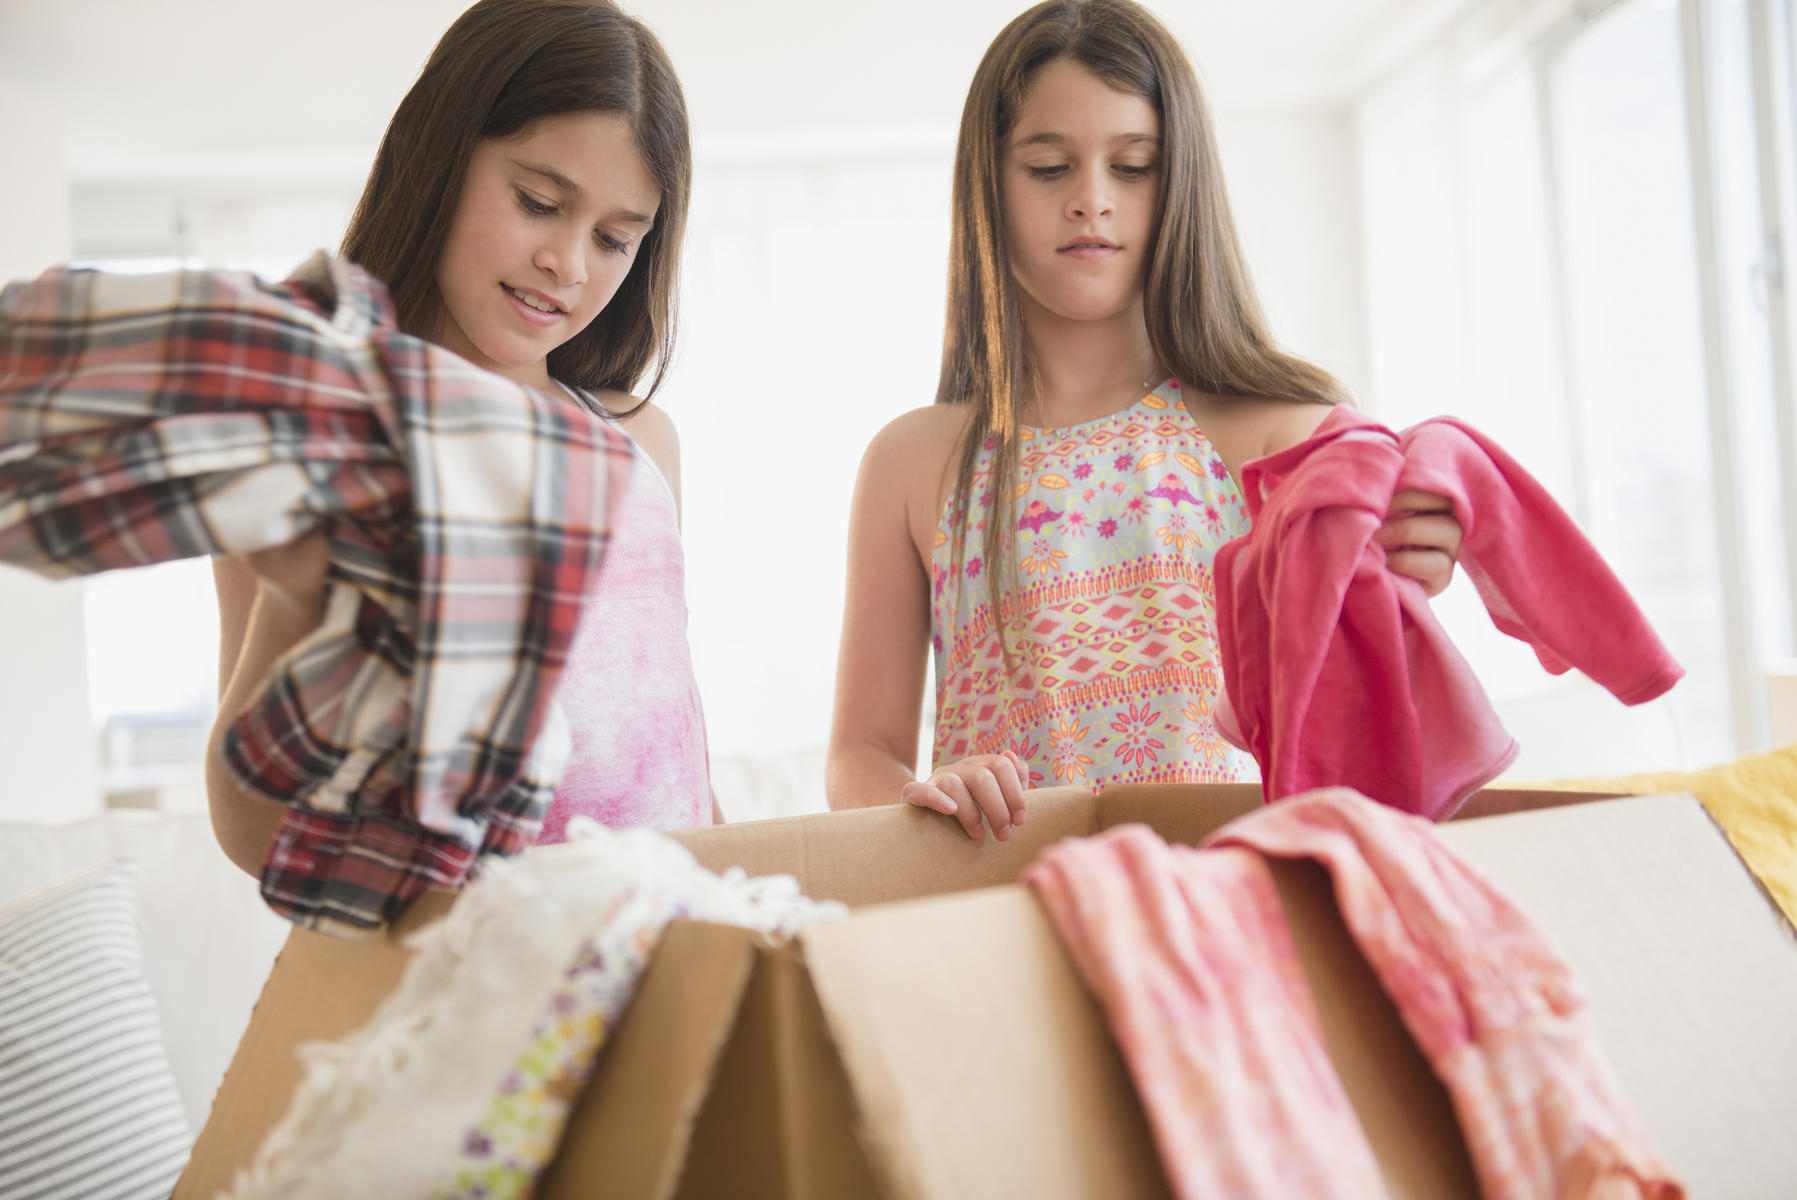 Holiday traditions: giving back